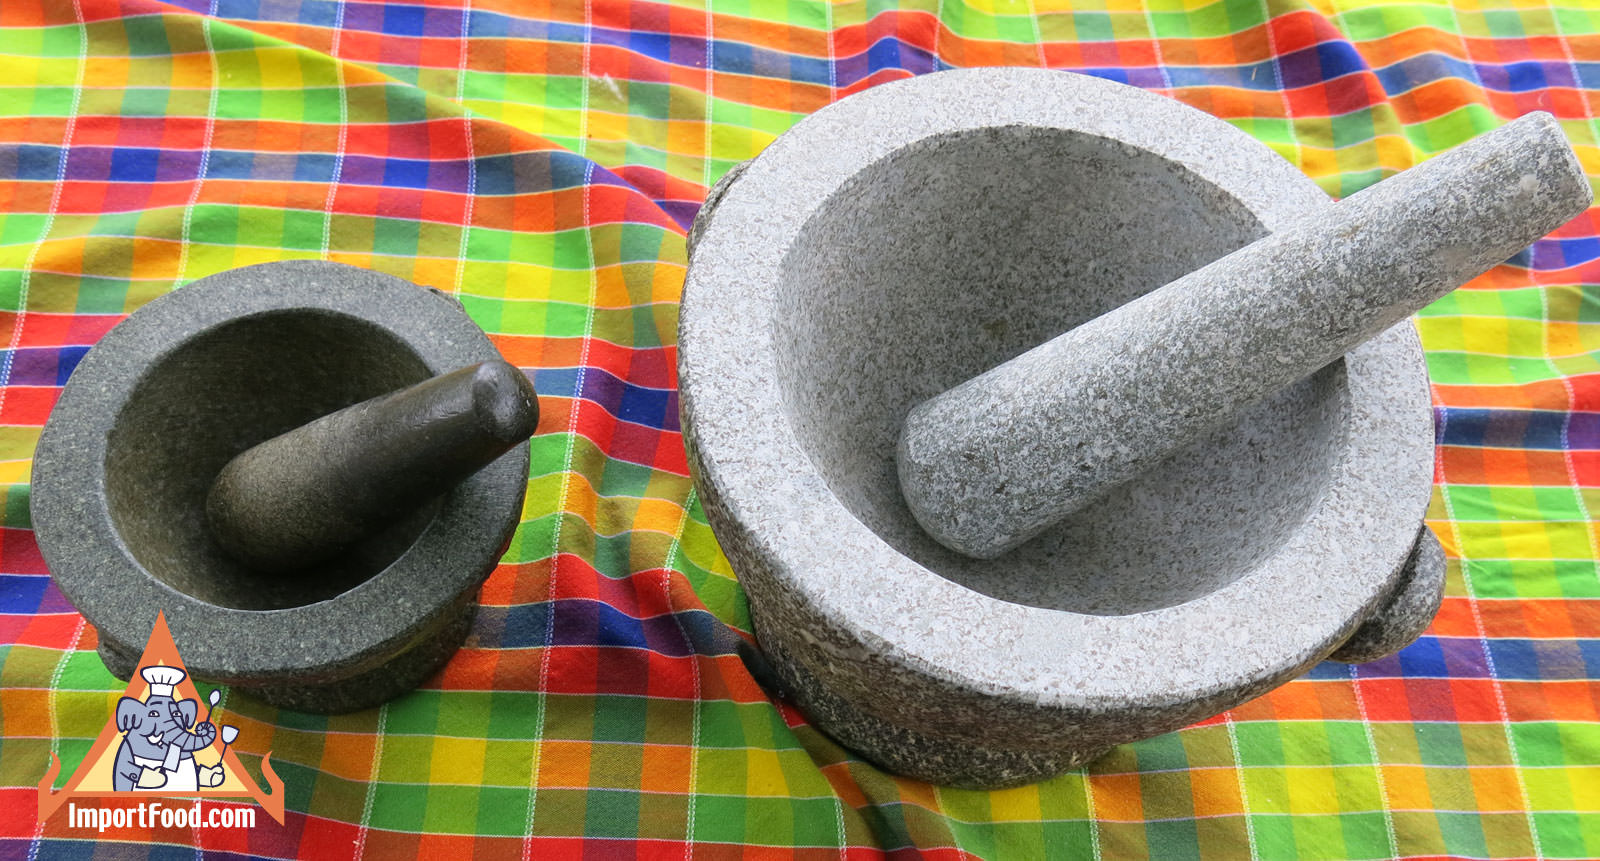 Mortar and Pestle 2